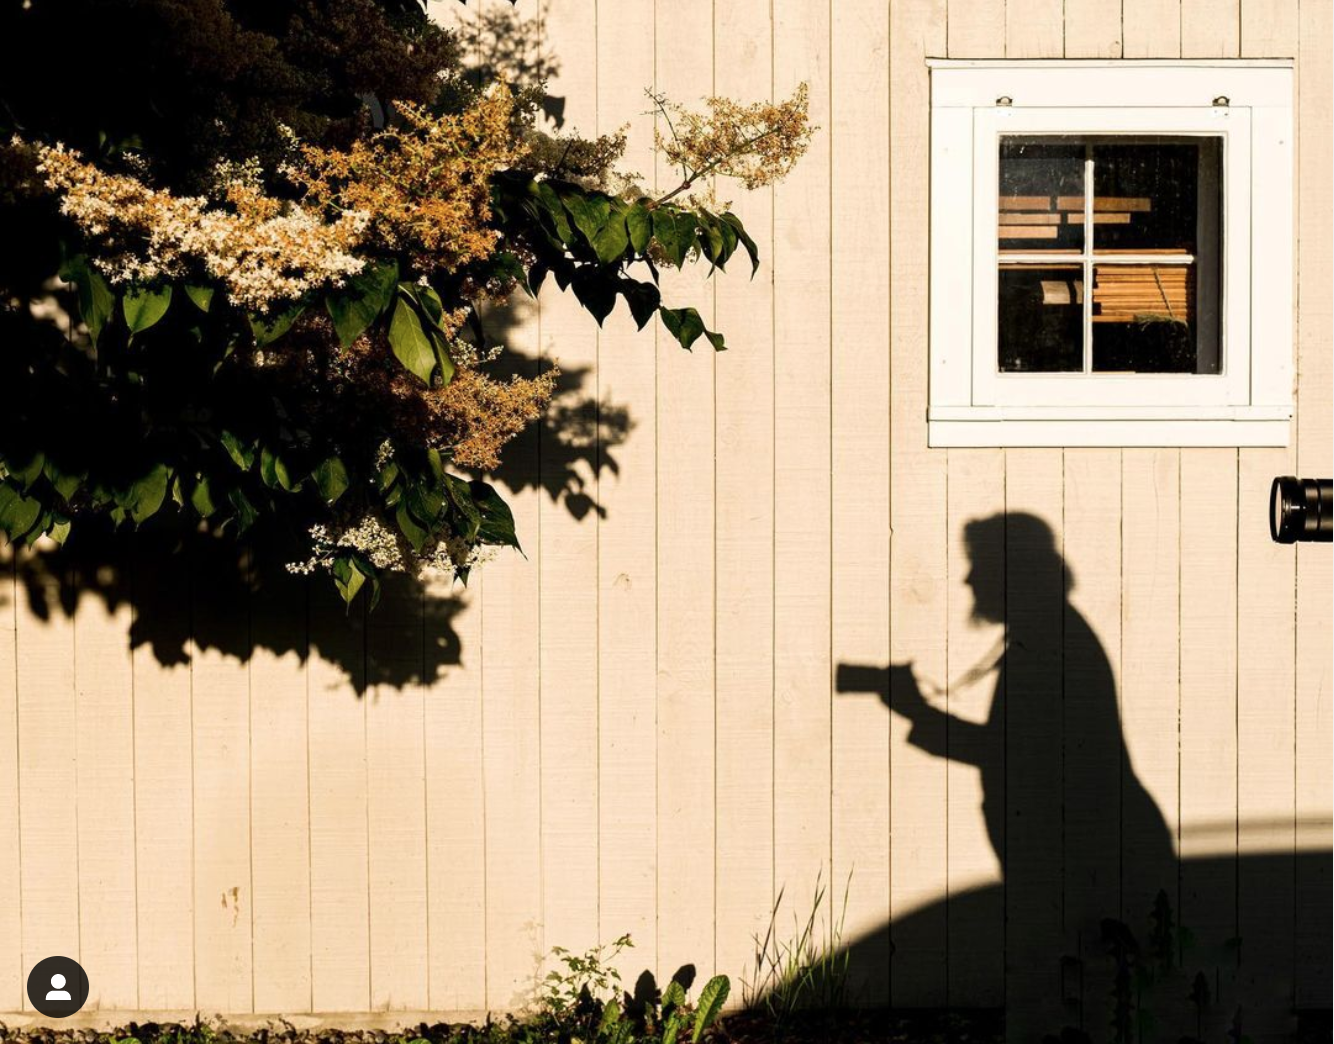 shadow of a woman taking a photograph